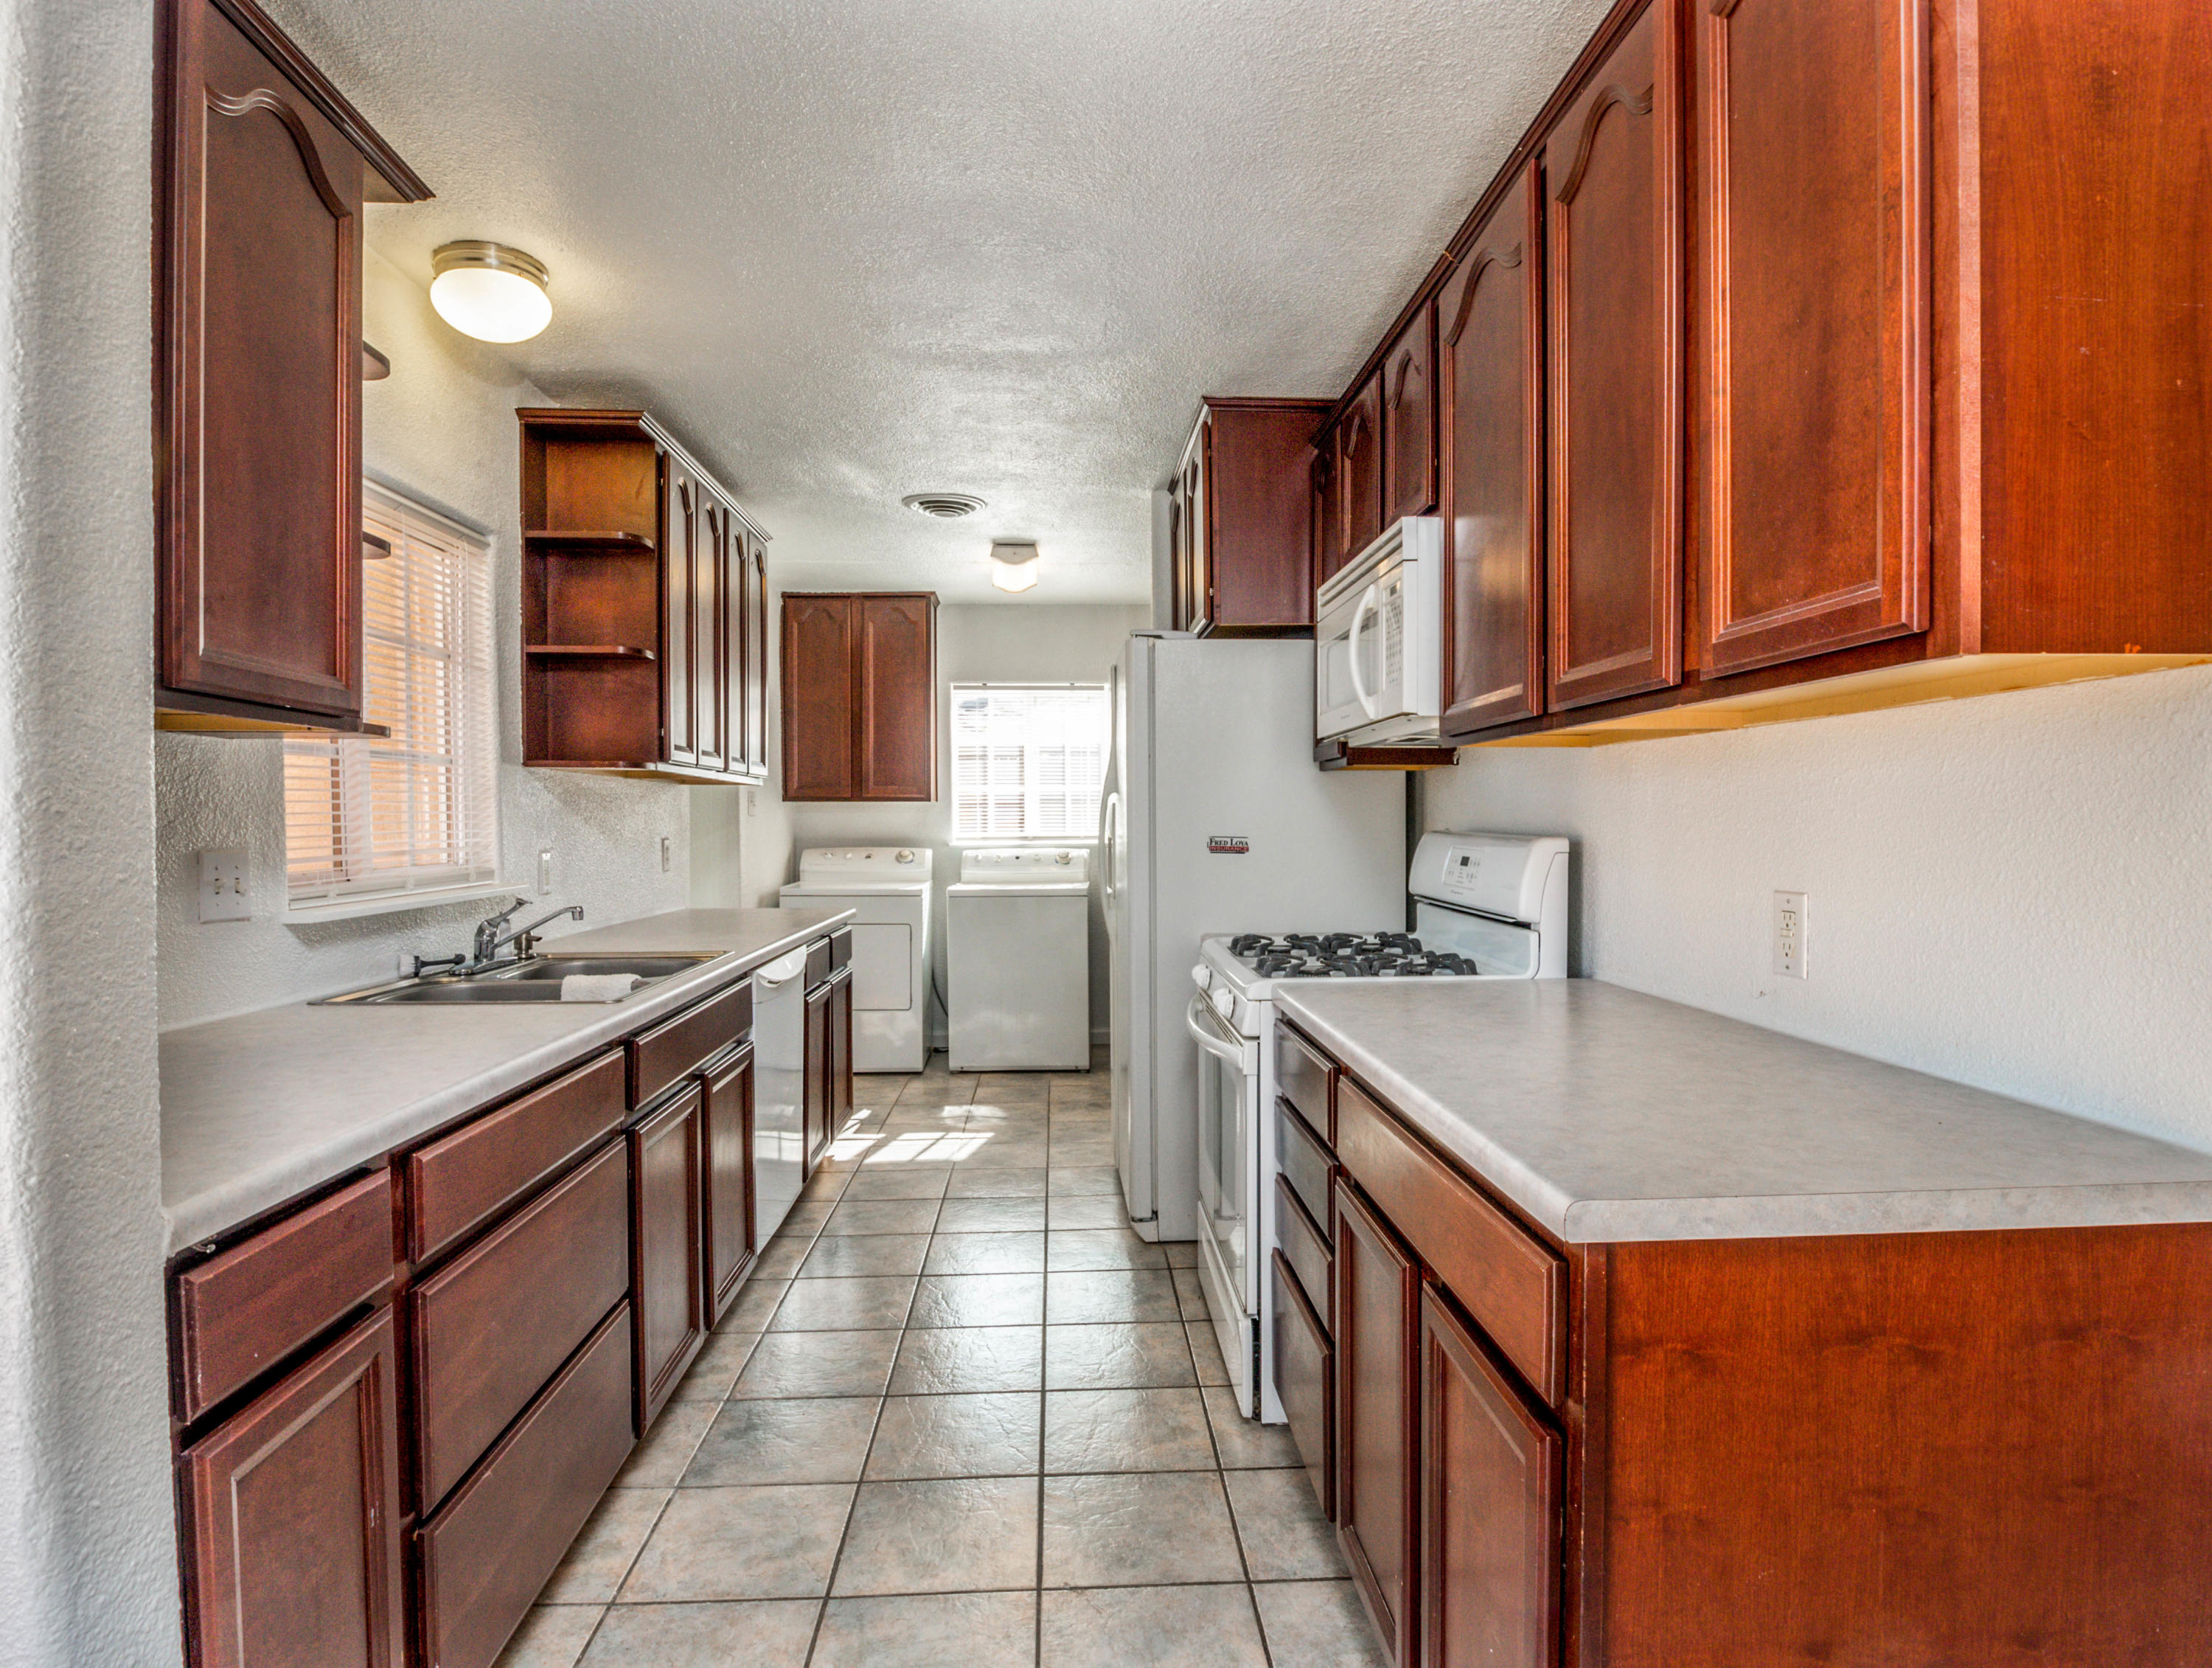 BRAND NEW ROOF, CARPET, PAINT, STUCCO, NEWER VINYL WINDOWS, REFRIGERATED AIR AND HEATING COMBO, HOT WATER HEATER, SEWER LINES, KITCHEN CABINETS ALL IN THE HEART OF ALBUQUERQUE CLOSE TO UNM, CNM, HOSPITALS, KAFB, VA, AIRPORT, FREEWAYS,MALLS, DOWNTOWN ENTERTAINMENT, BEAUTIFUL PARKS FOR WALKING THE DOGS, ALL JUST MINUTES AWAY. Come and see this one before its gone.